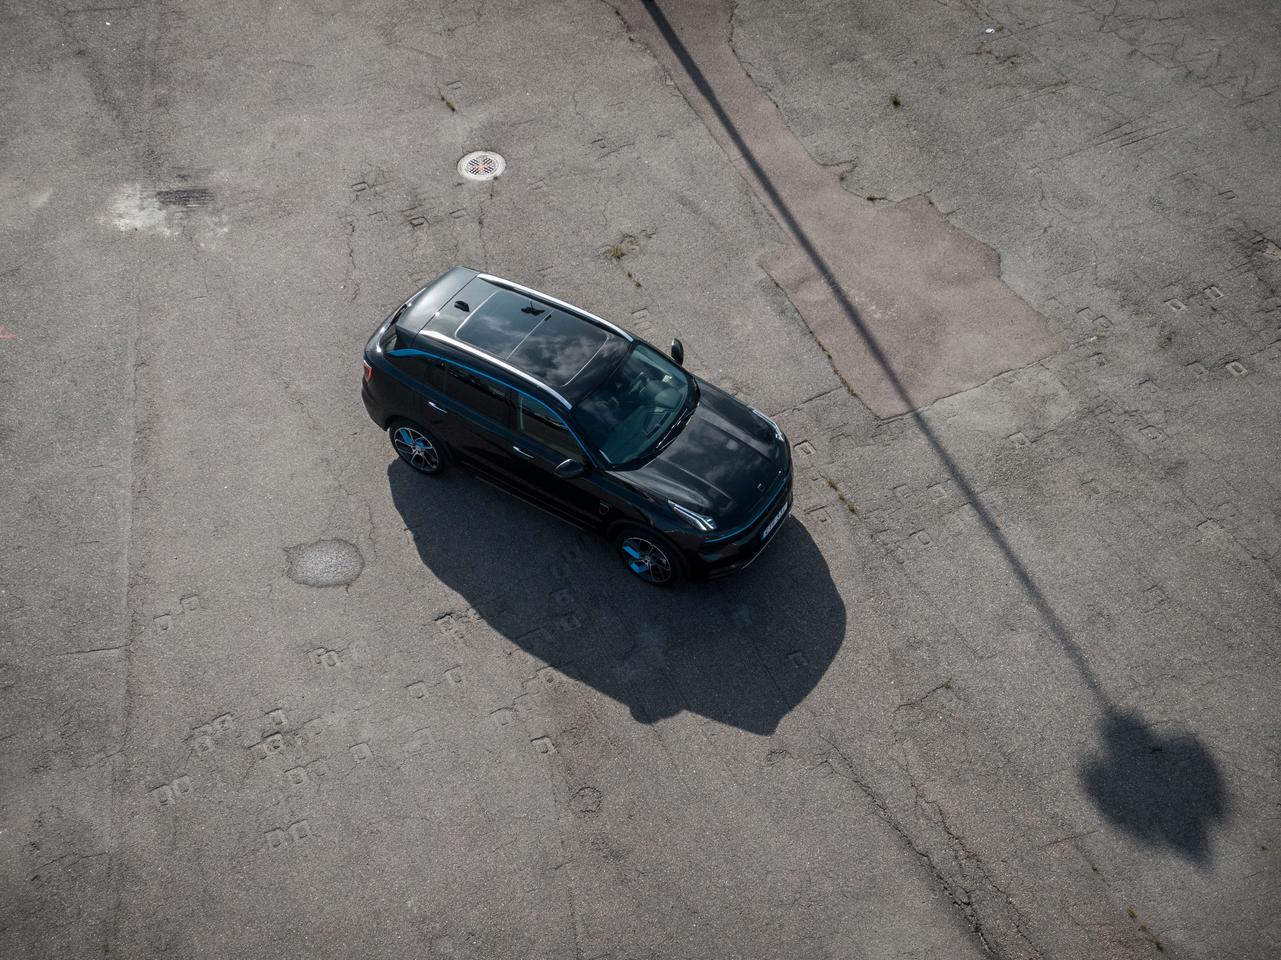 The Lynk & Co 01 being introduced into Europe shortly will be available as a hybrid electric and plug-in hybrid